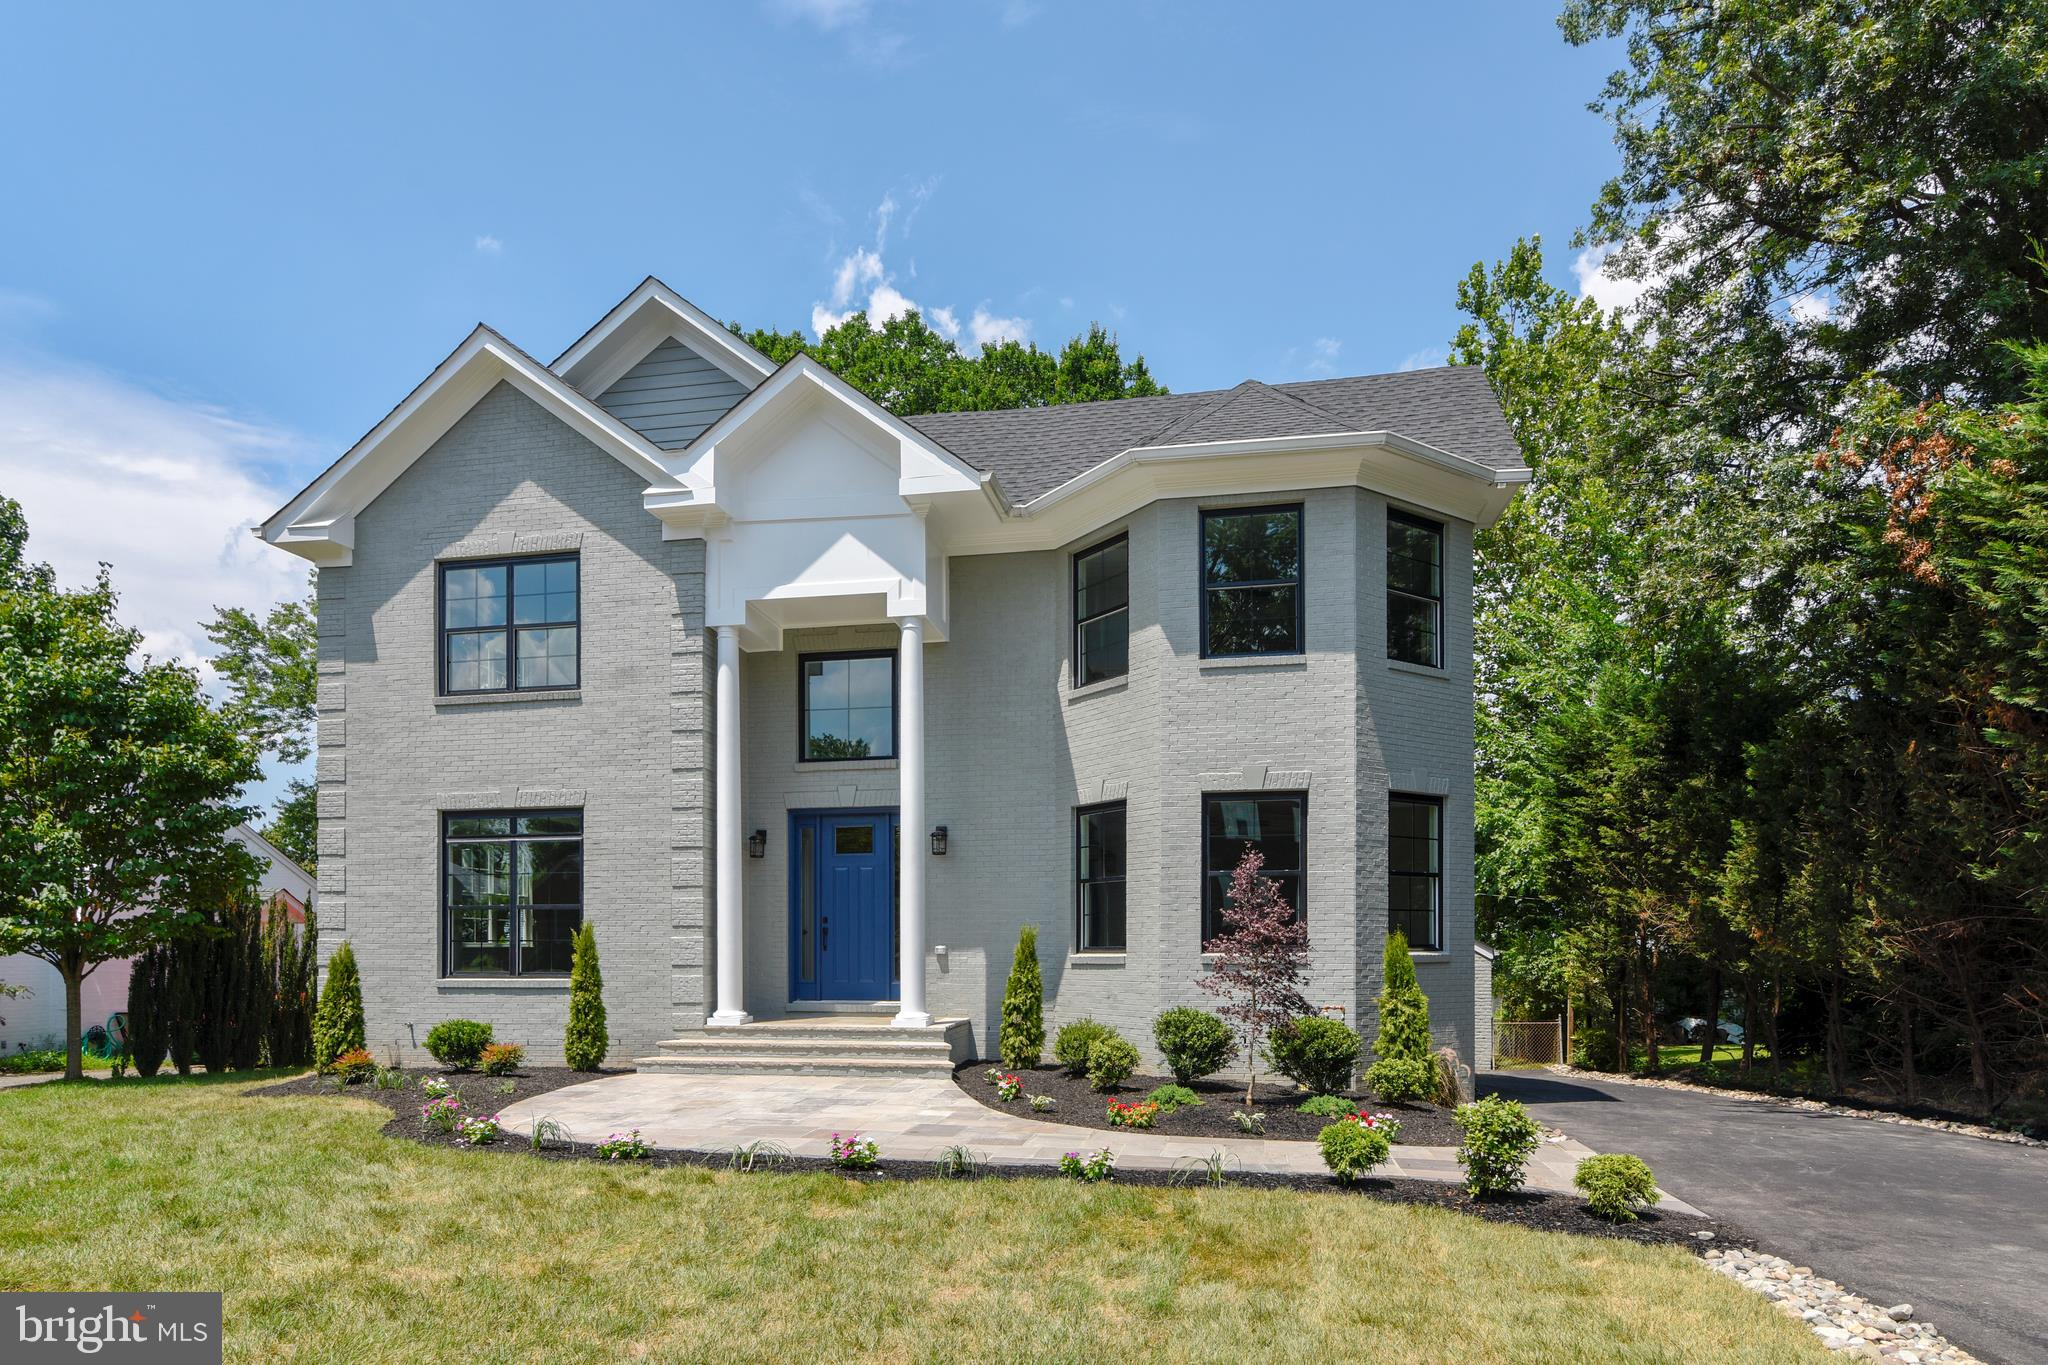 2902 LINDEN LANE, FALLS CHURCH, VA 22042